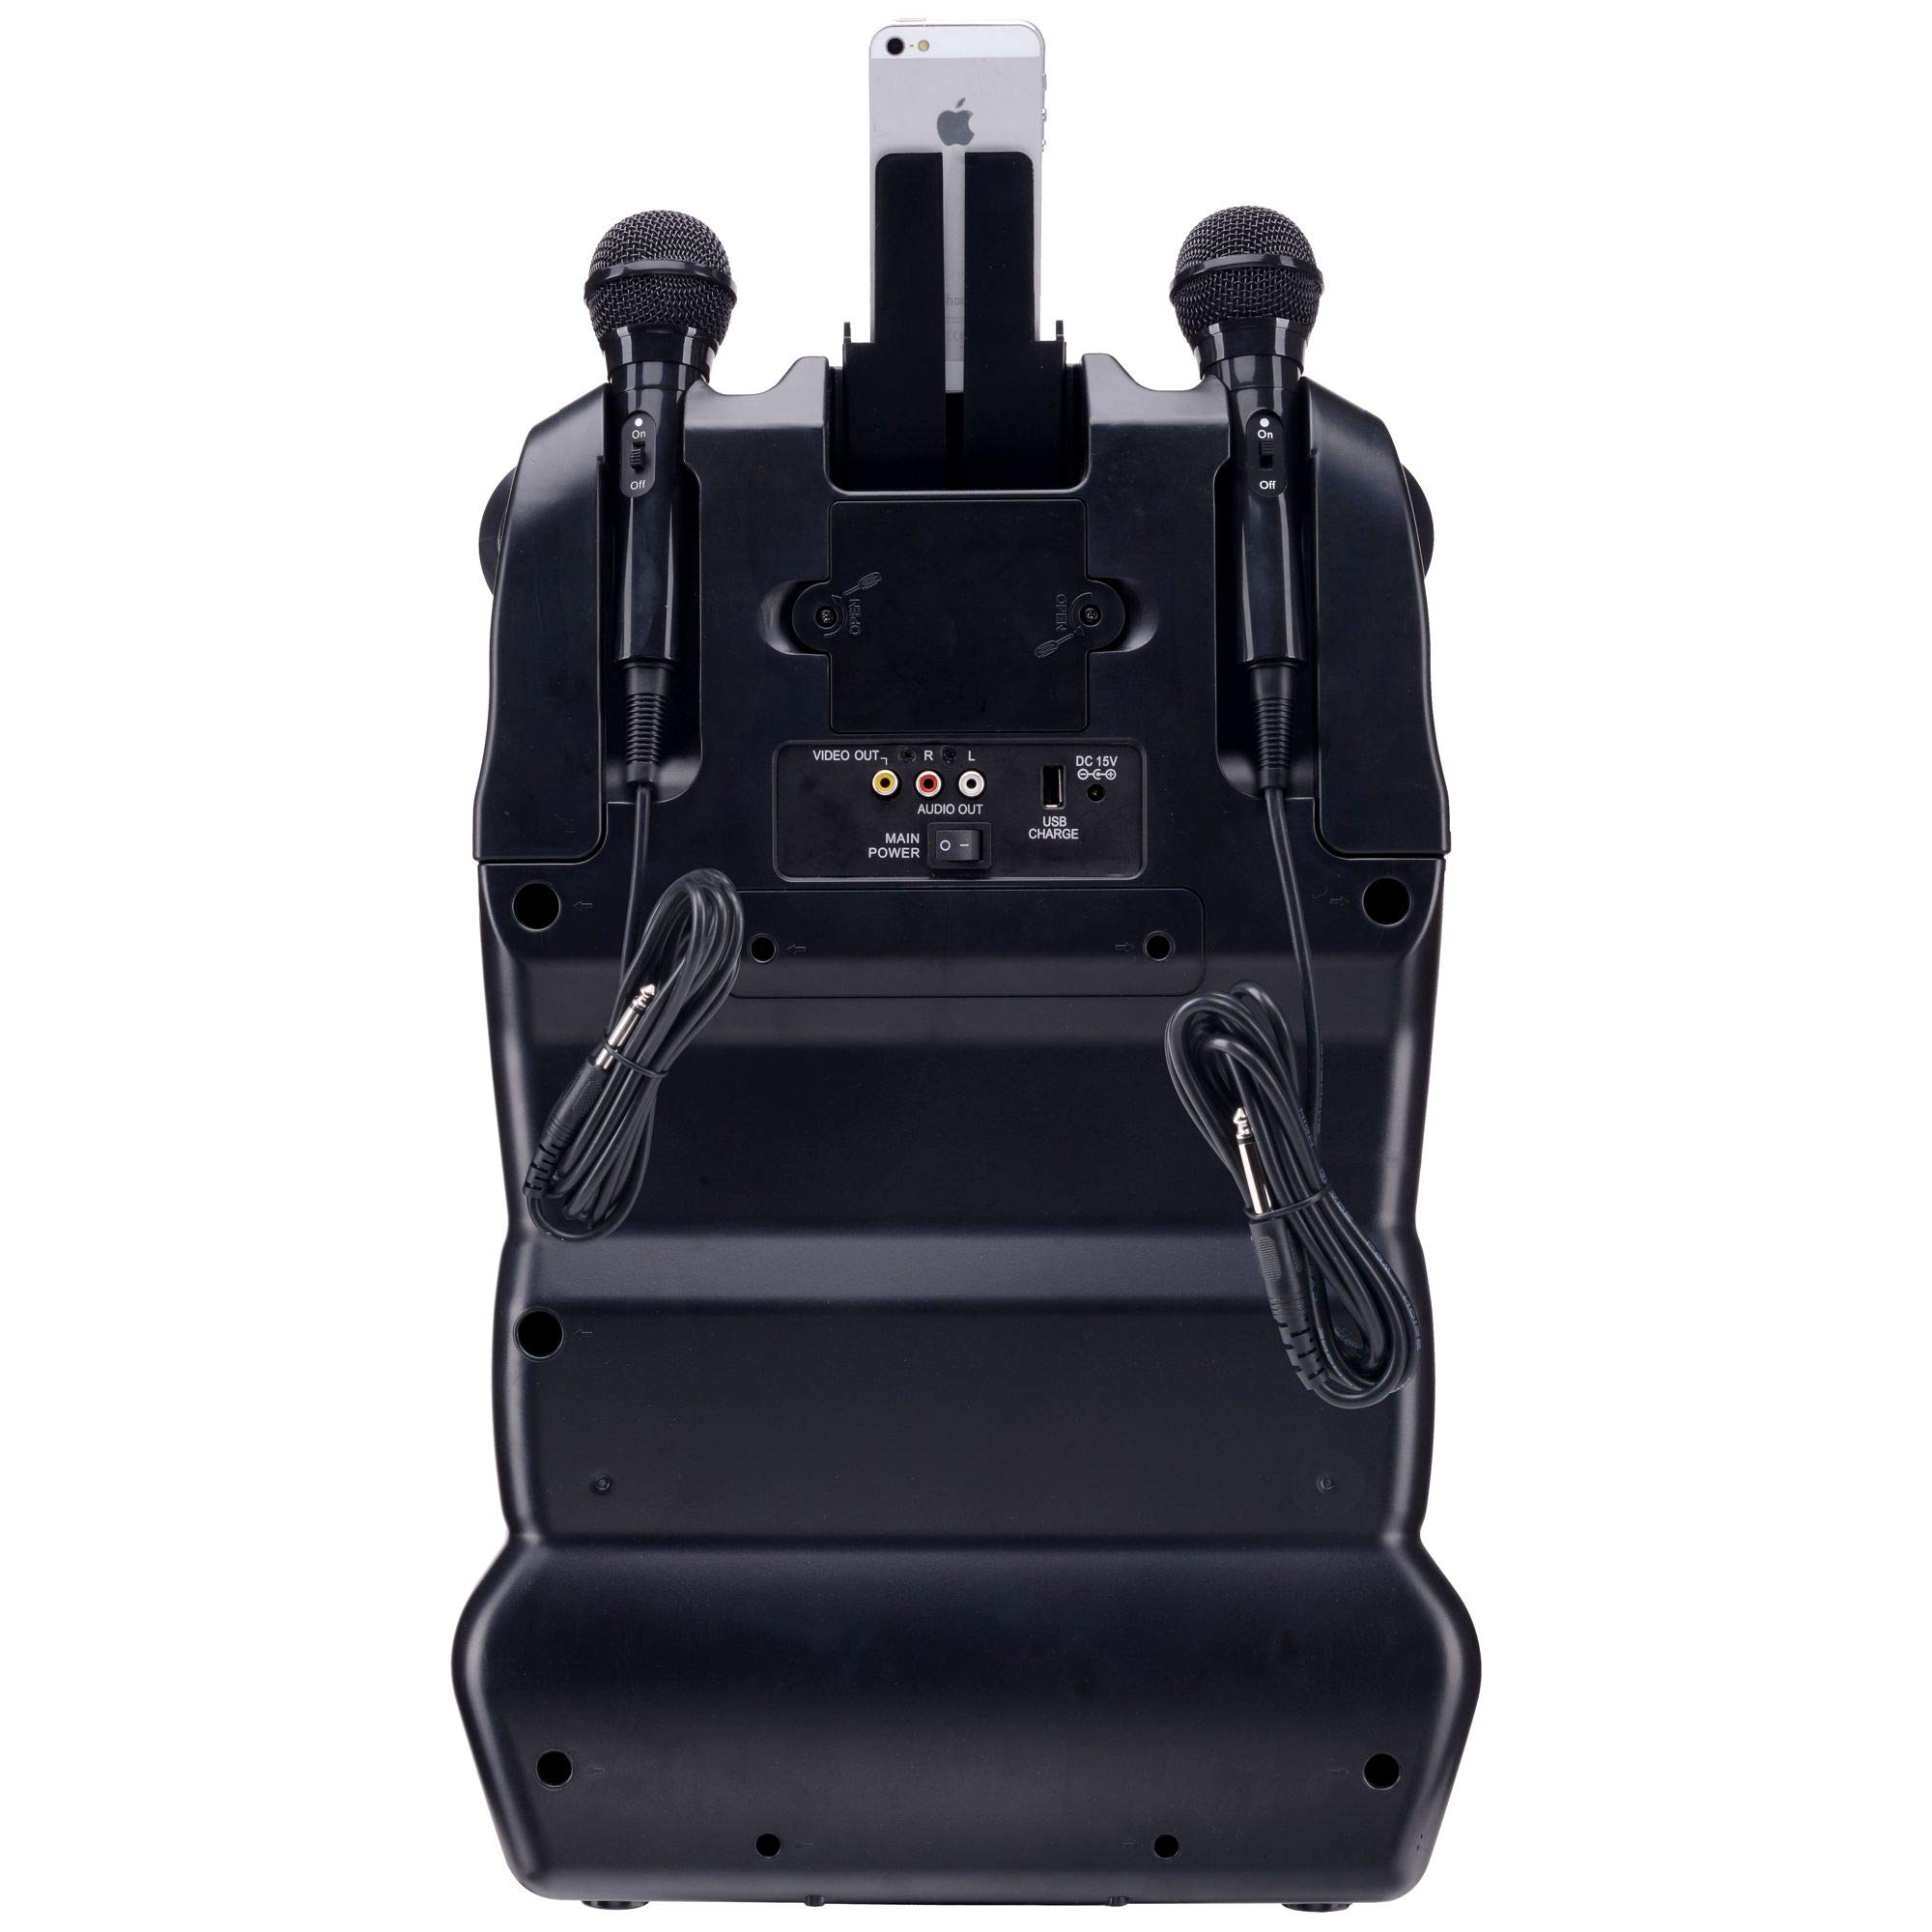 Karaoke USA GF920 Outdoor Portable Professional Bluetooth Karaoke Machine and PA System with Rechargeable Lithium Battery by Karaoke USA (Image #2)